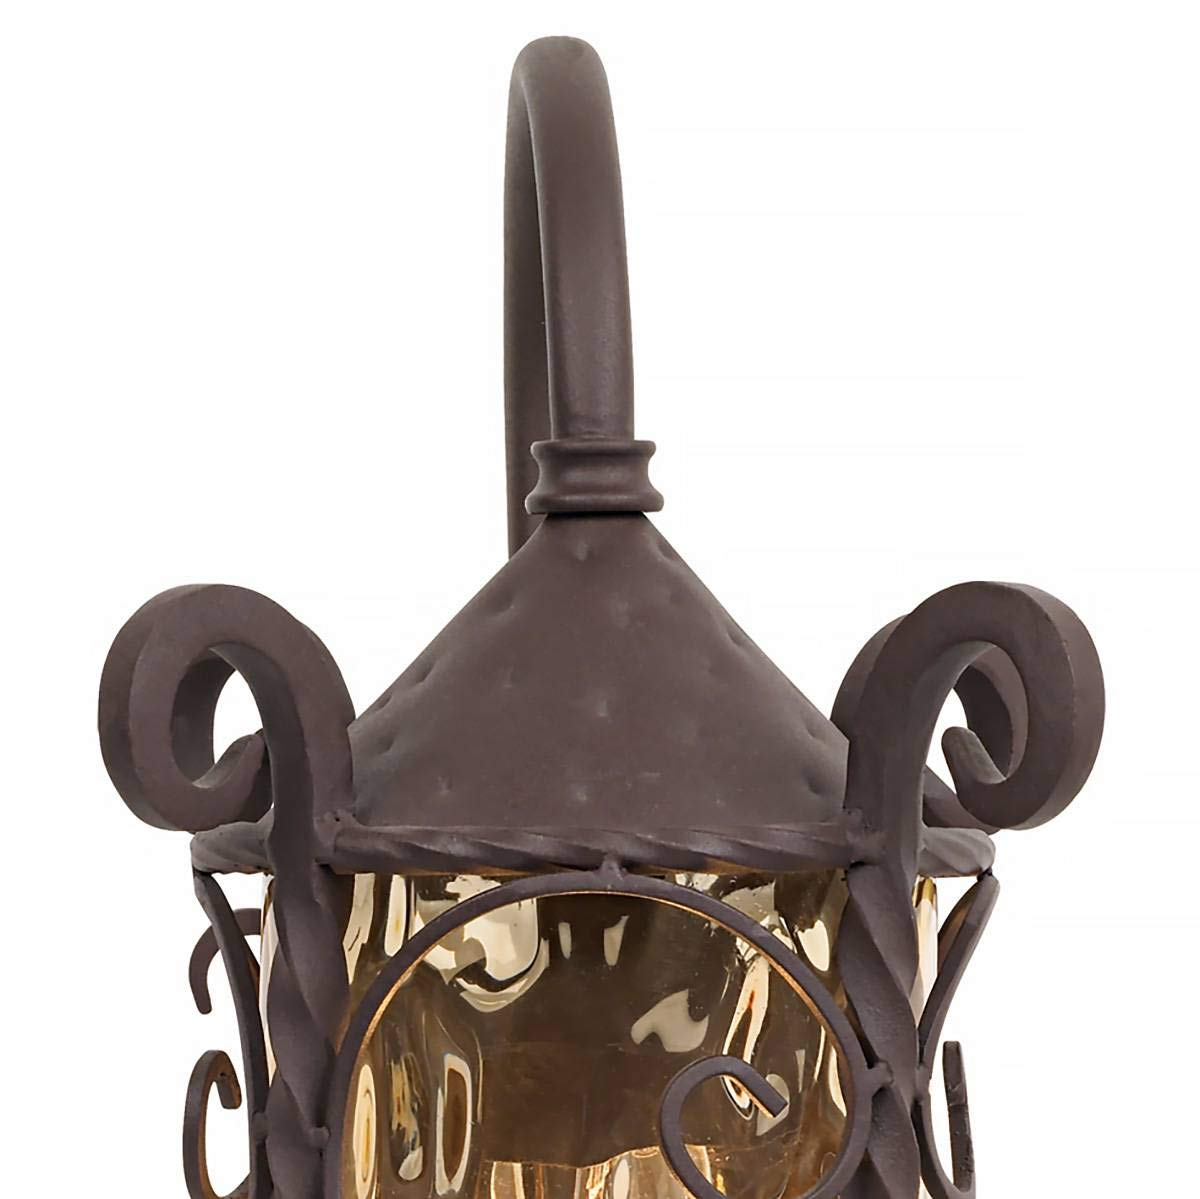 Casa Seville Rustic Outdoor Wall Light Fixture Mediterranean Inspired Dark Walnut Iron Twists 18 1/2'' Champagne Hammered Glass for Exterior House Porch Patio Deck - John Timberland by John Timberland (Image #5)